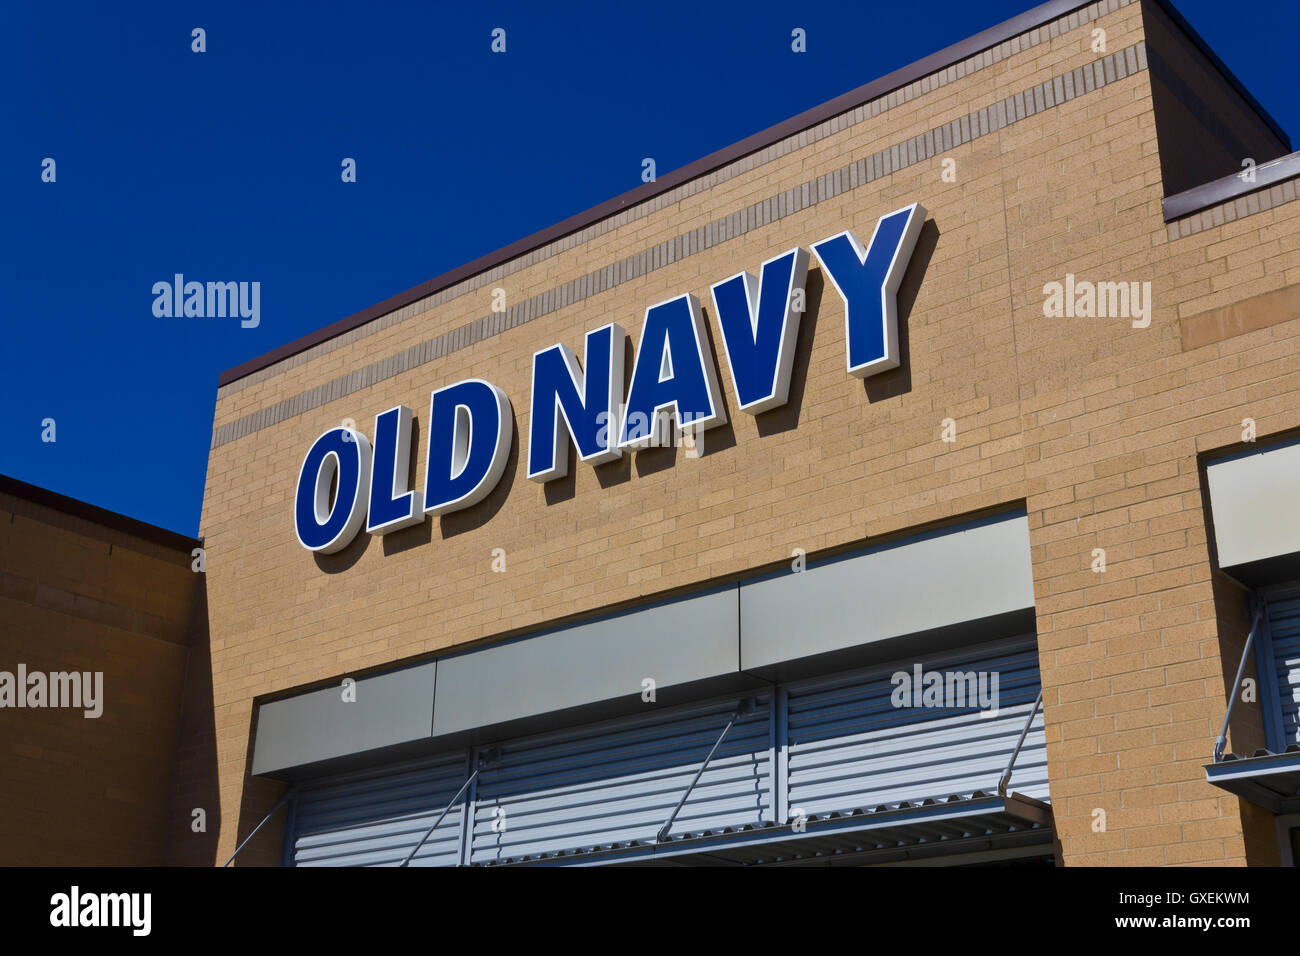 Indianapolis - Circa June 2016: Old Navy Retail Mall Location. Old Navy is a Division of Gap Inc. II - Stock Image